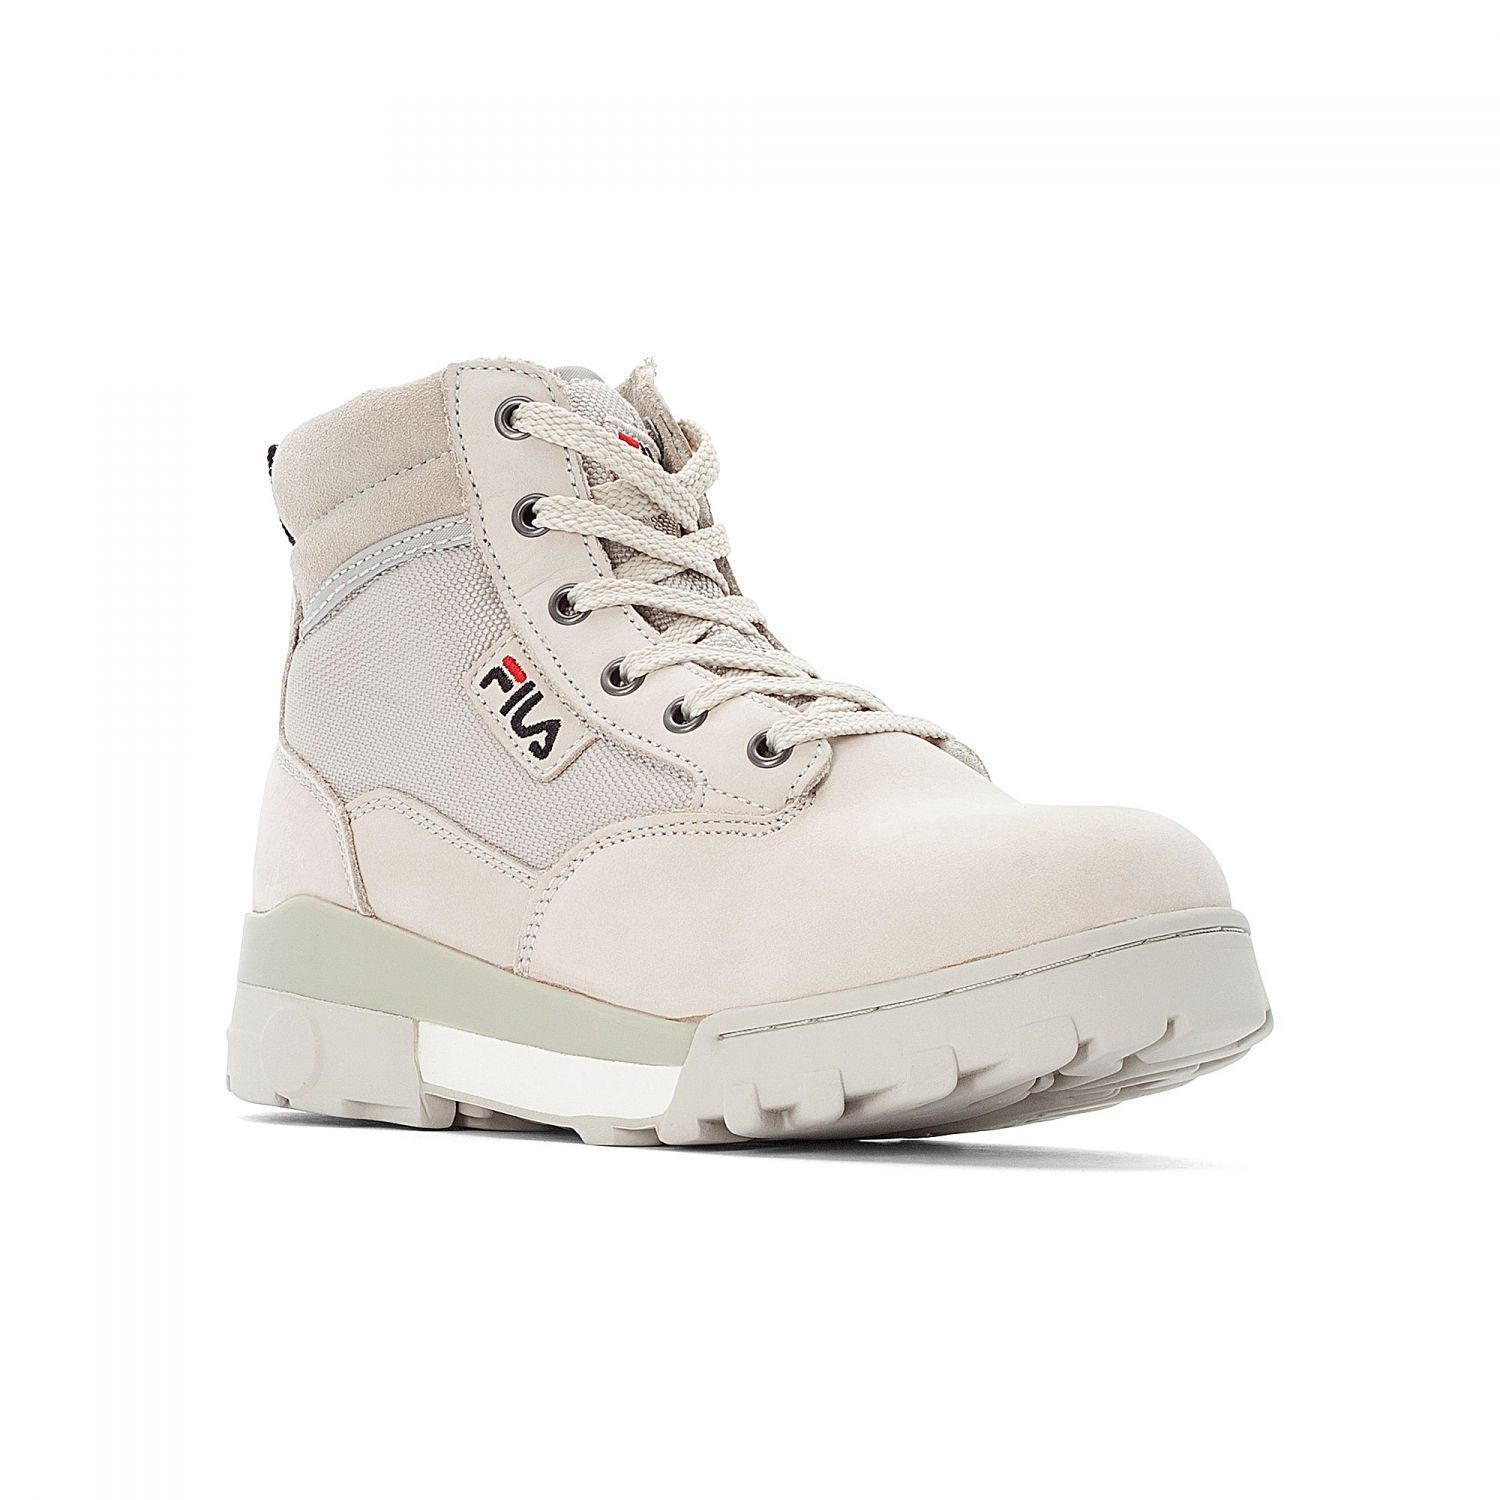 6ad147c57a9a Fila - Grunge Mid Wmn feather-grey - 00014201655247 ...